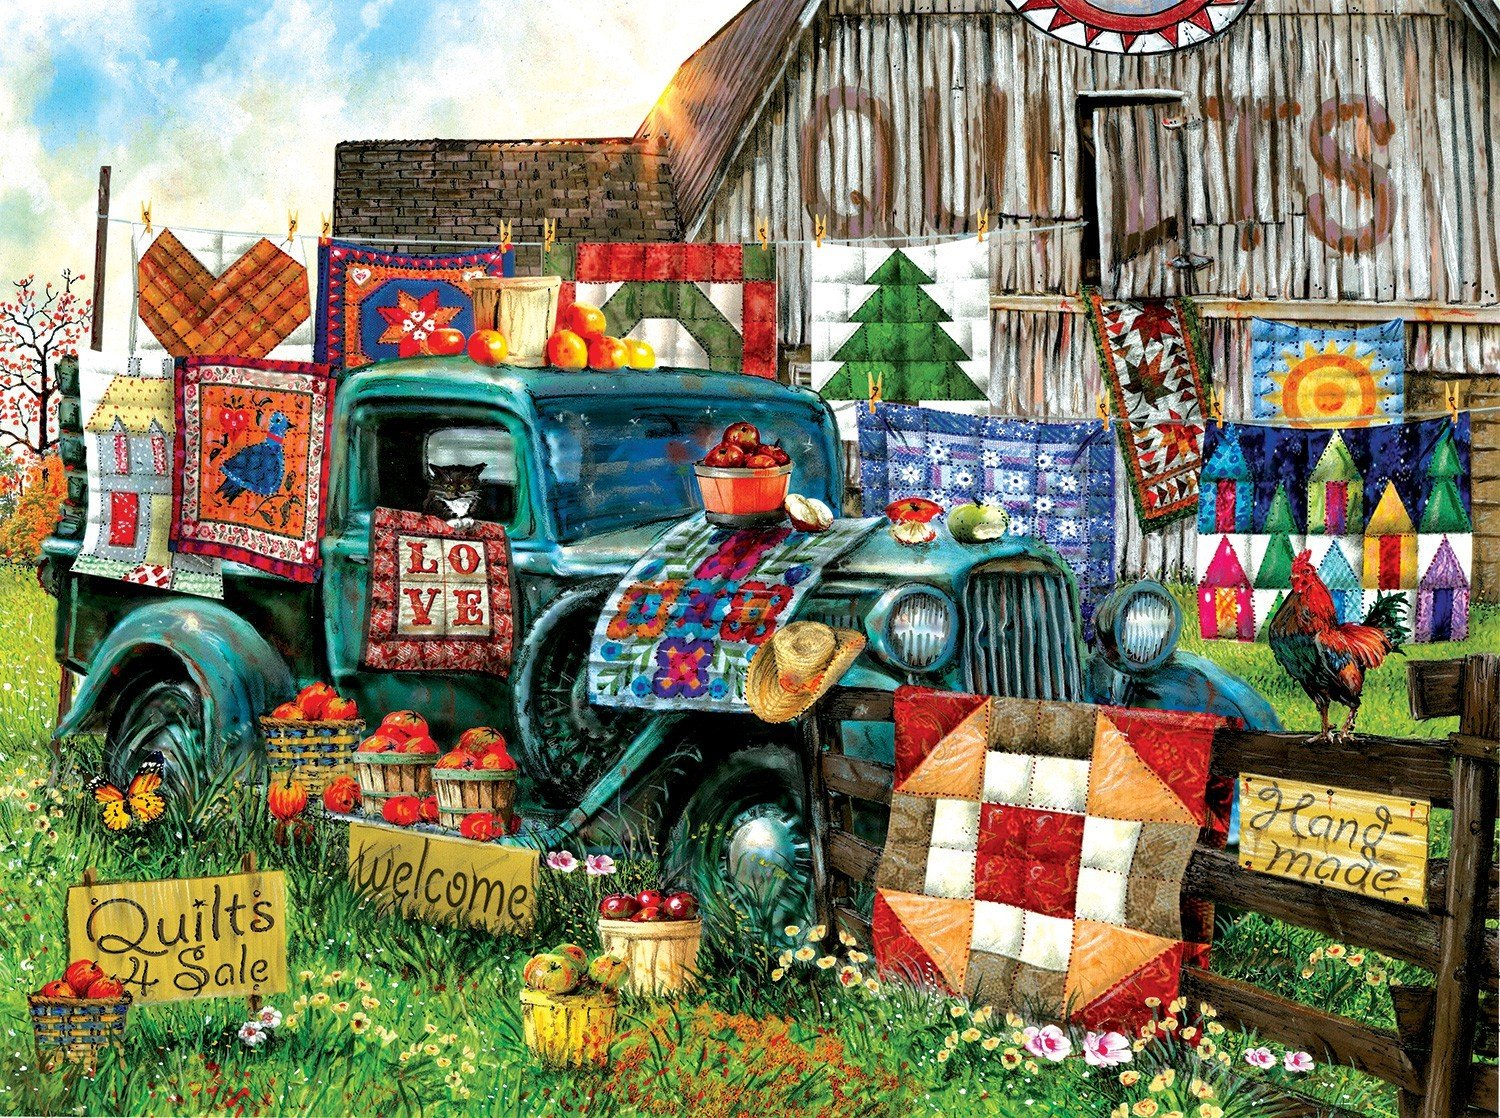 PUZZLE QUILTS FOR SALE 1000PC